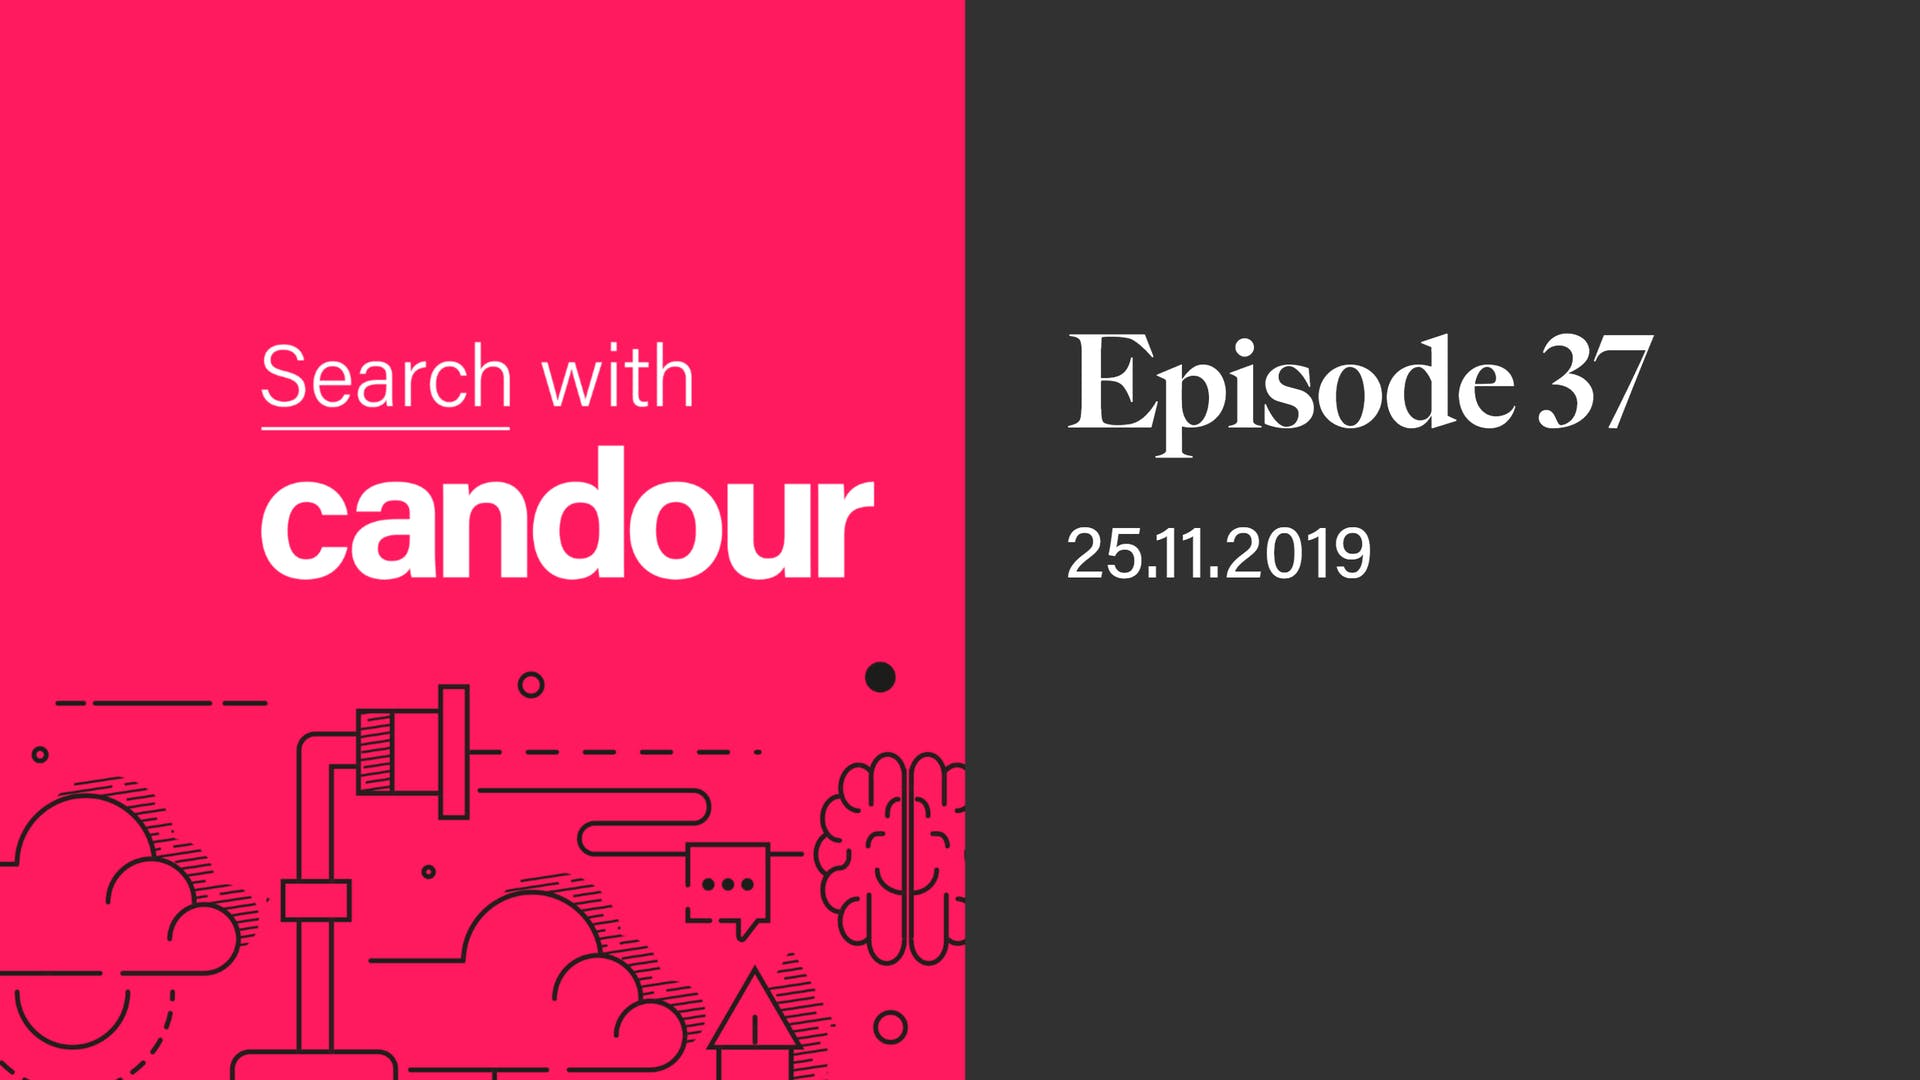 Search with Candour Episode 37